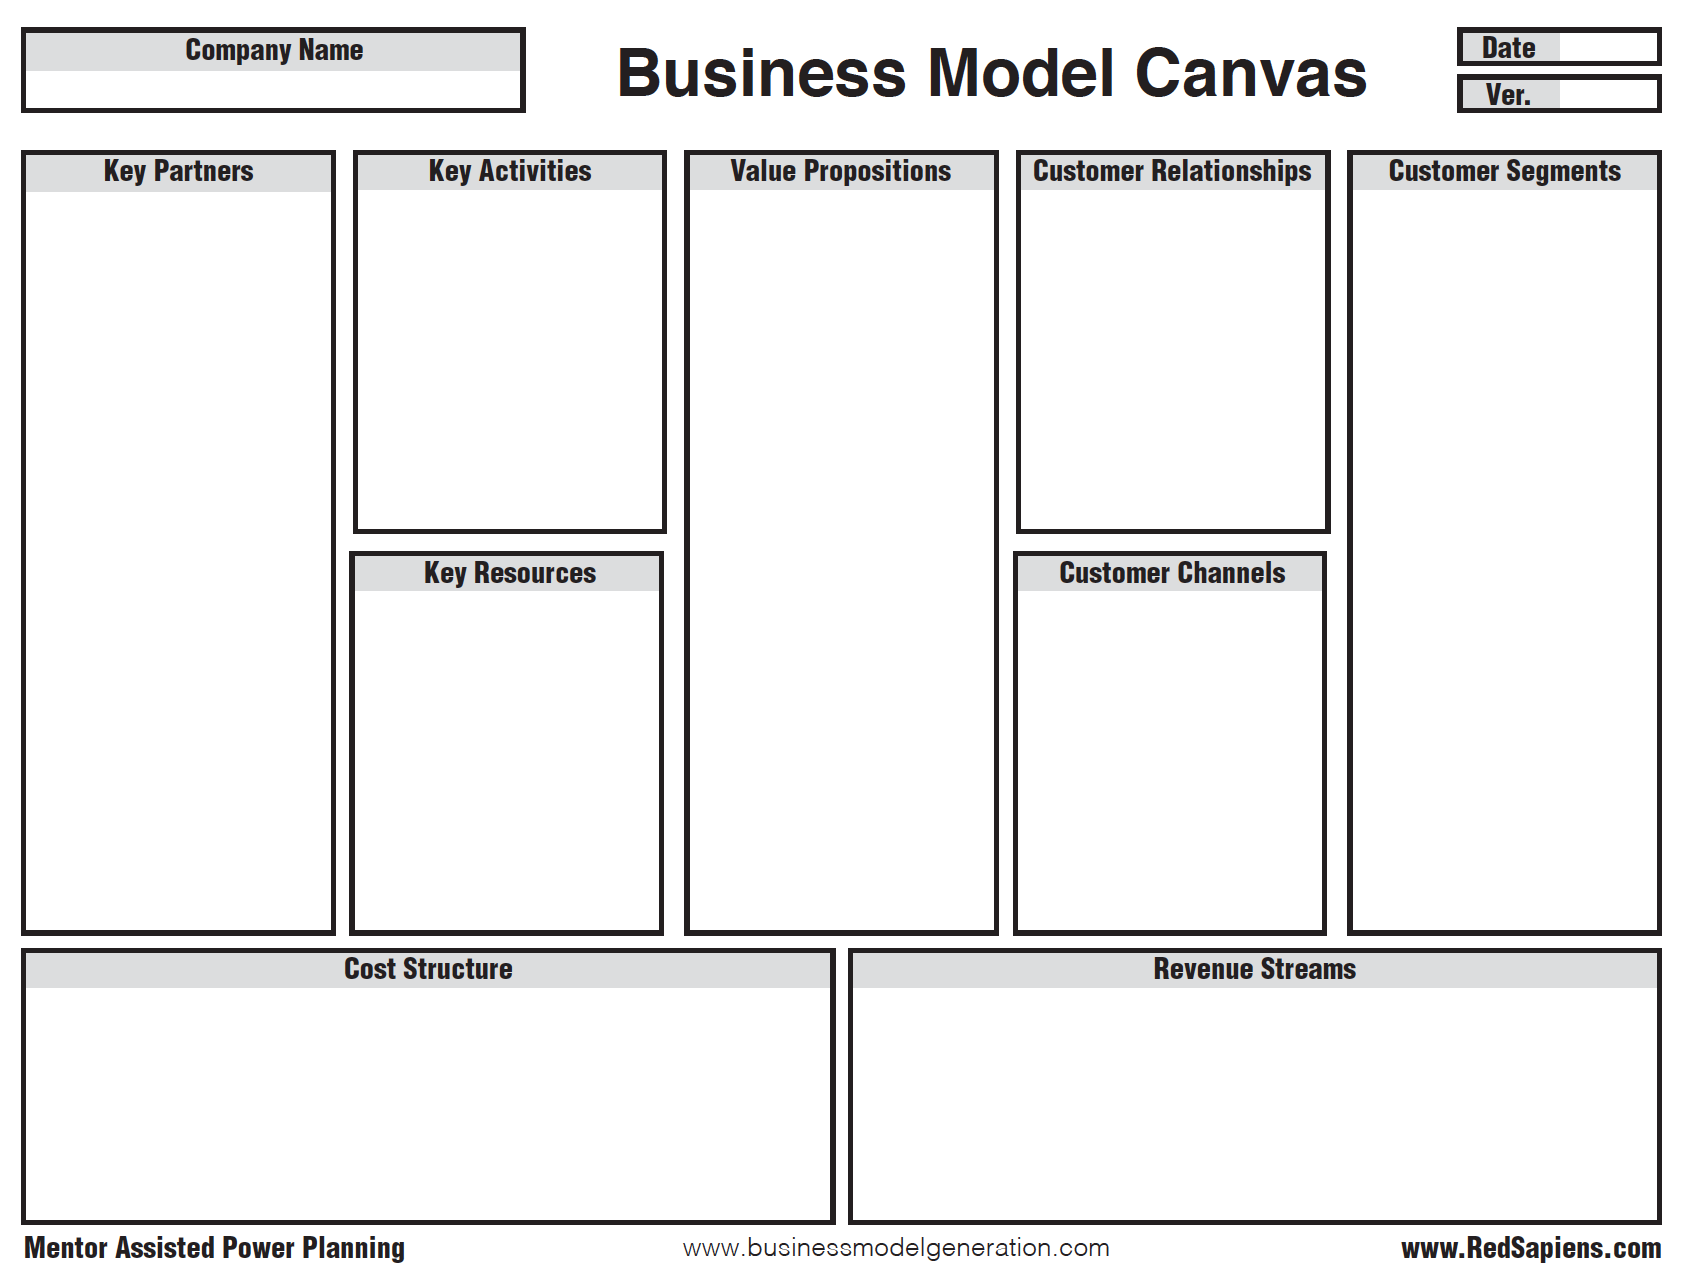 Download theBusiness Model Tool -